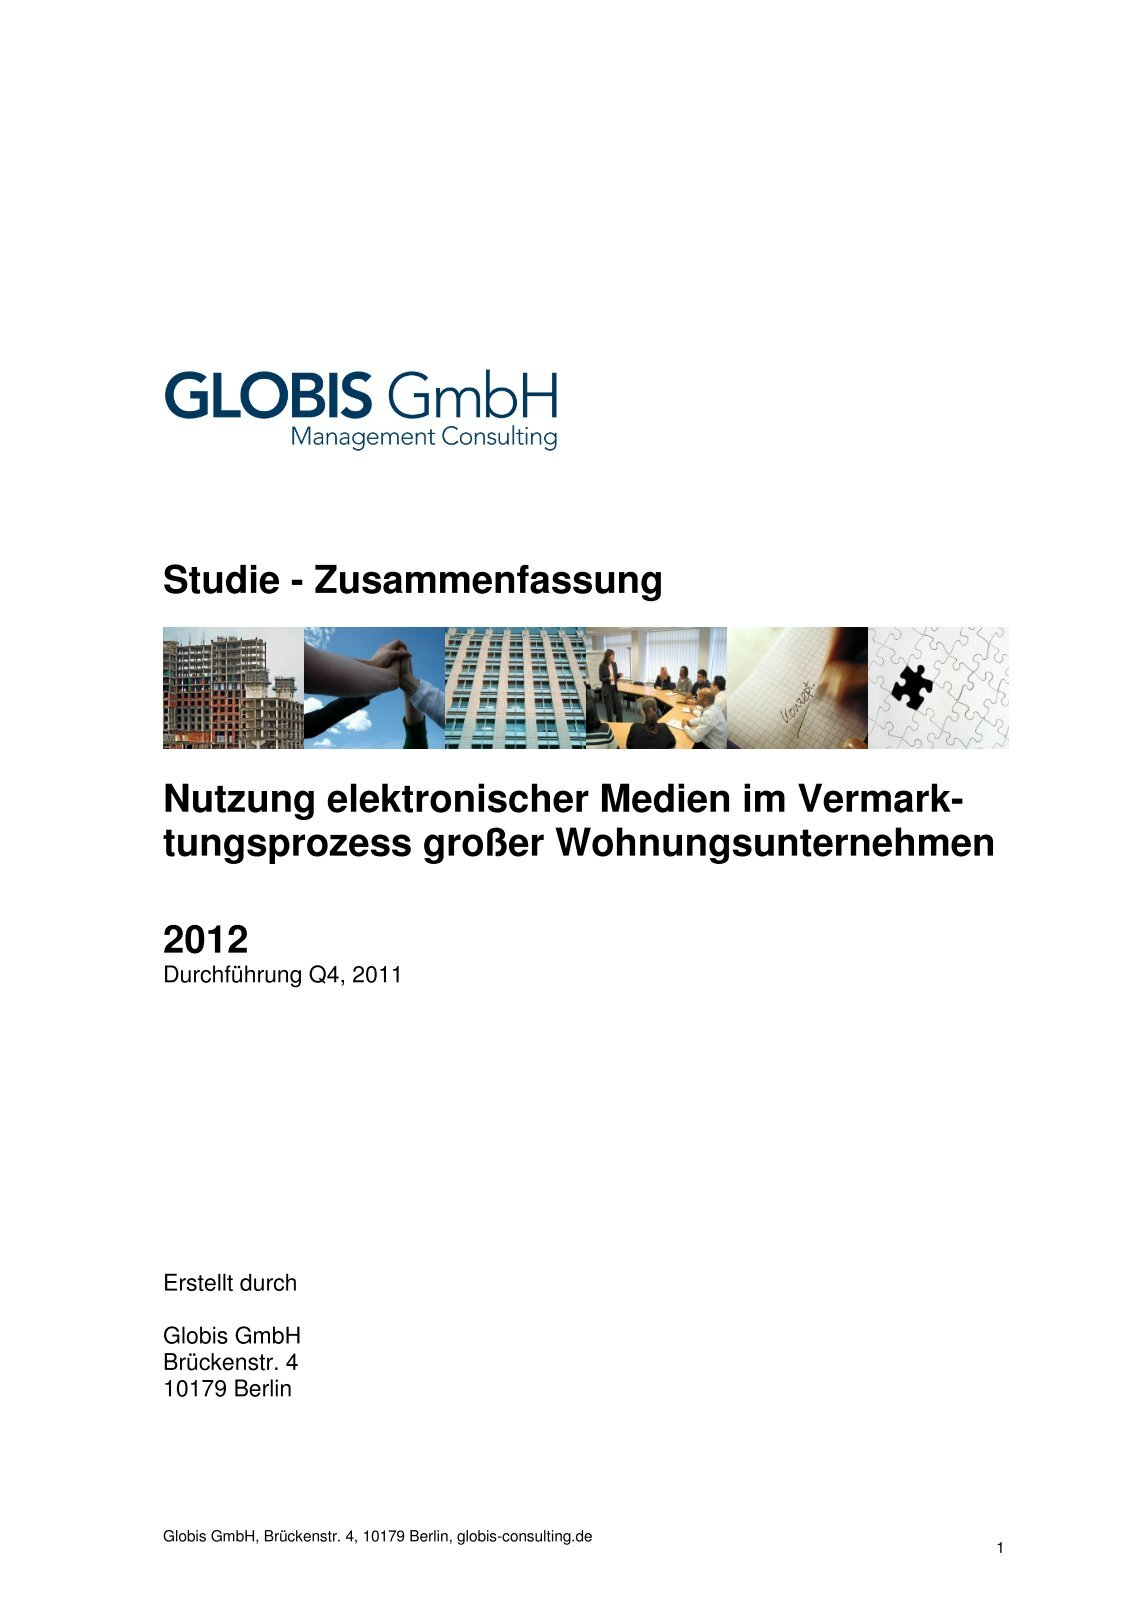 Globis Gmbh 1 free magazines from globis consulting de